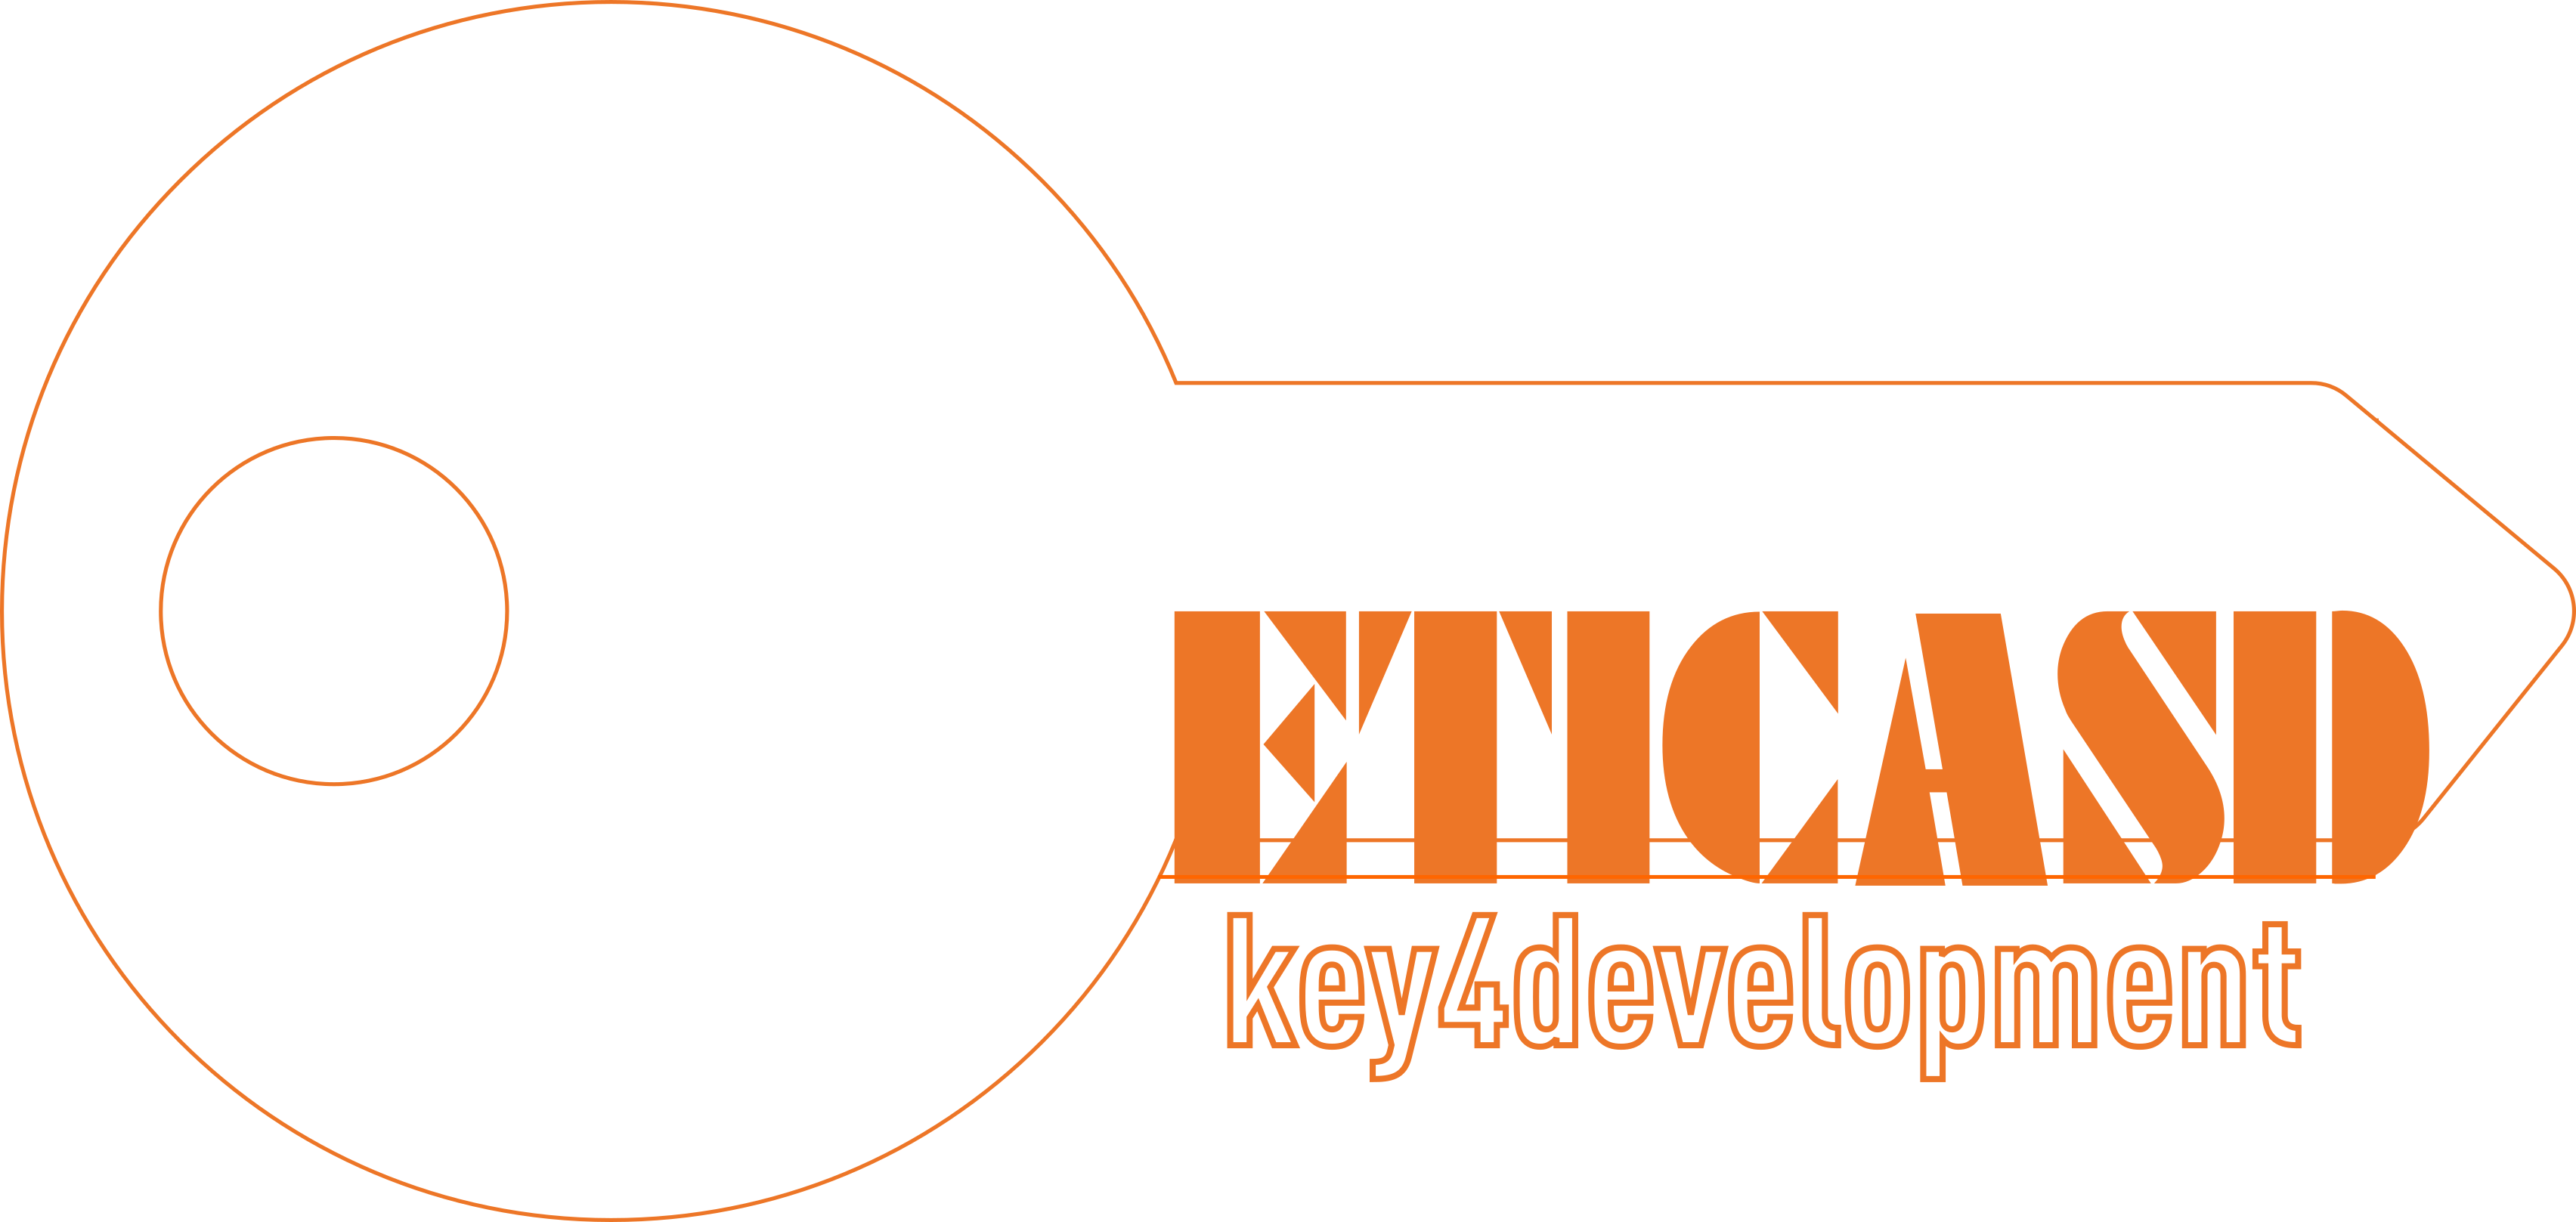 Key4development